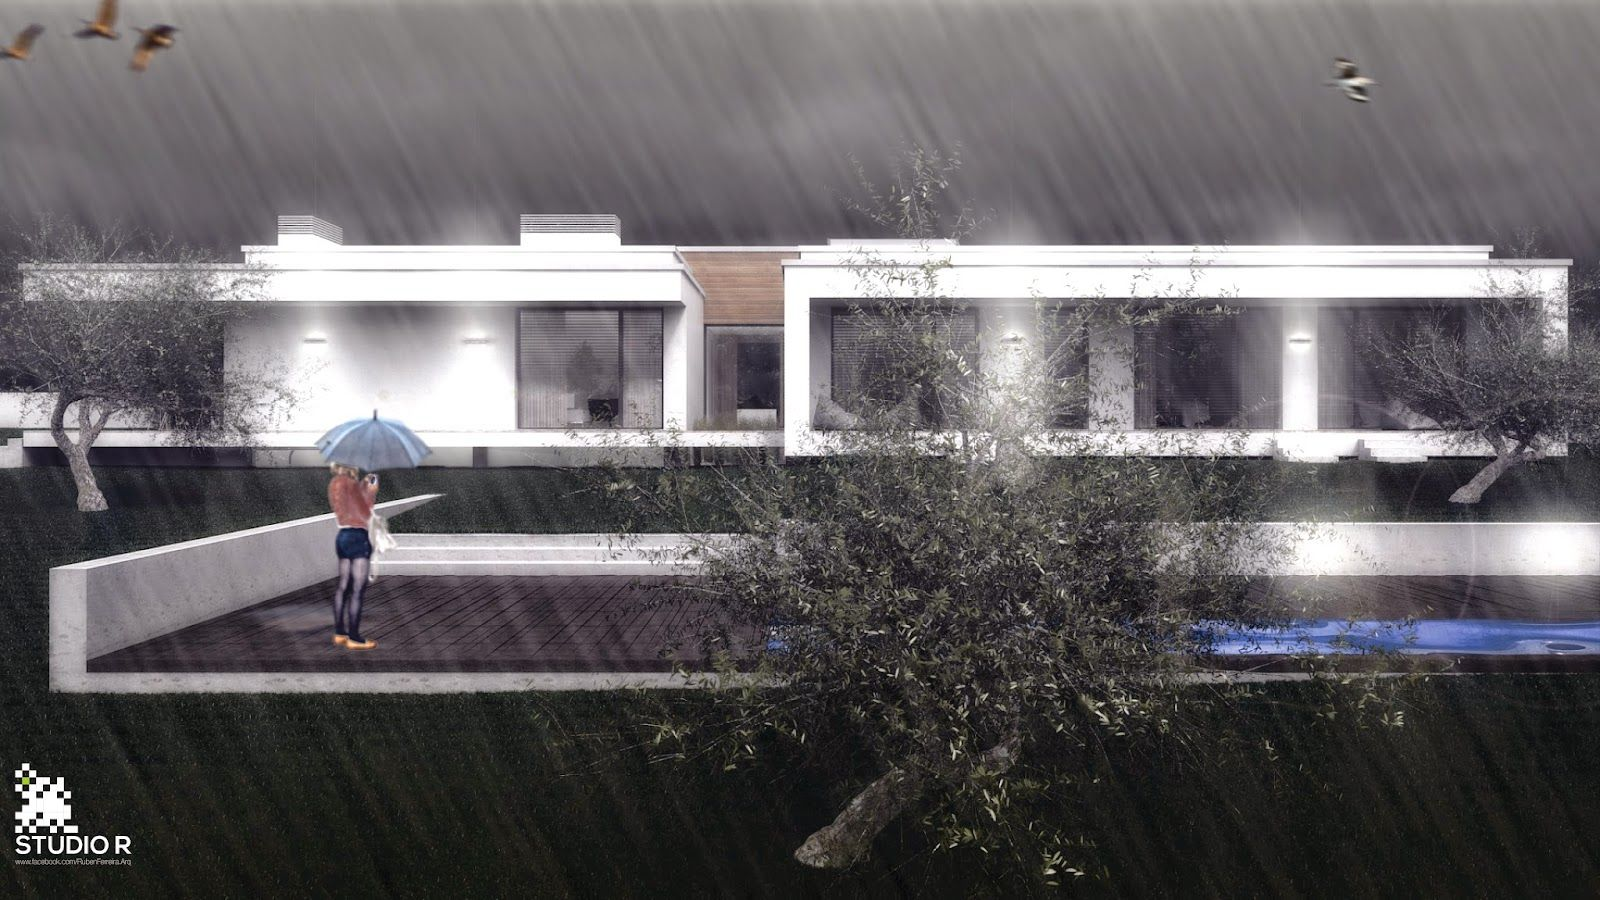 Studio R   architecture: SH House   CasaSH 3D model made with #3dsmax, #vray and #photoshop